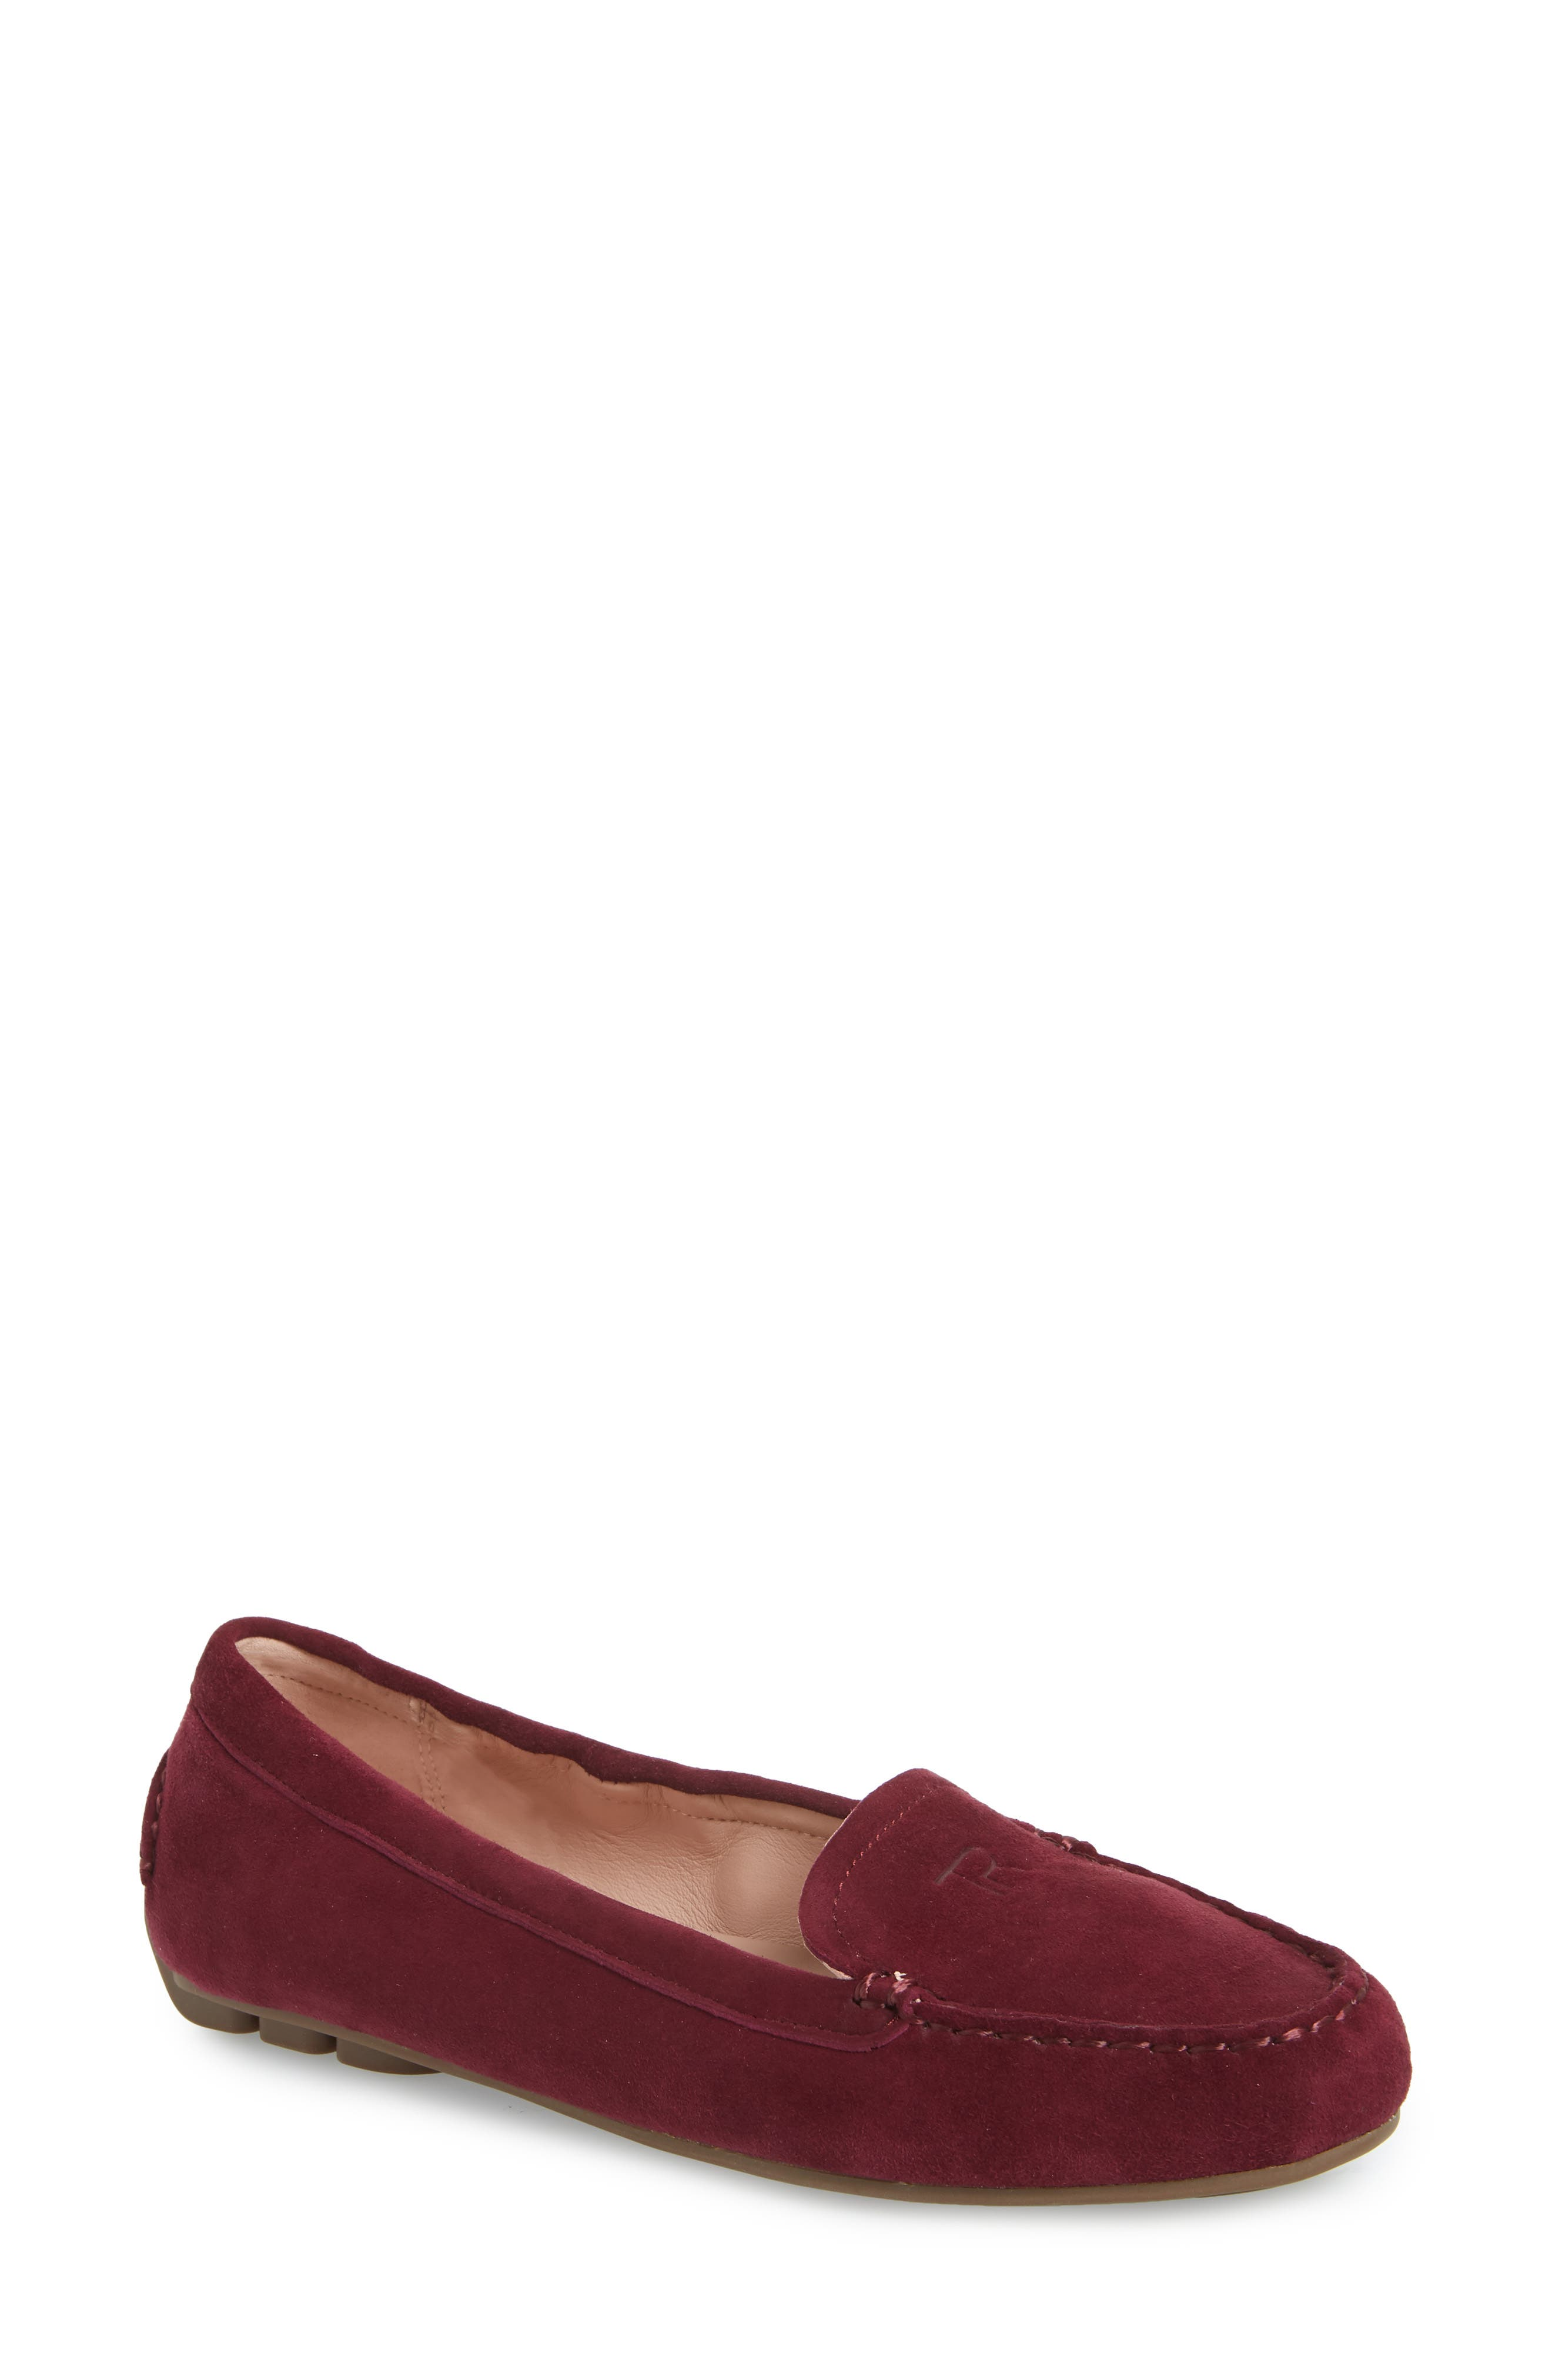 Kristine Loafer,                             Main thumbnail 1, color,                             Burgundy Suede